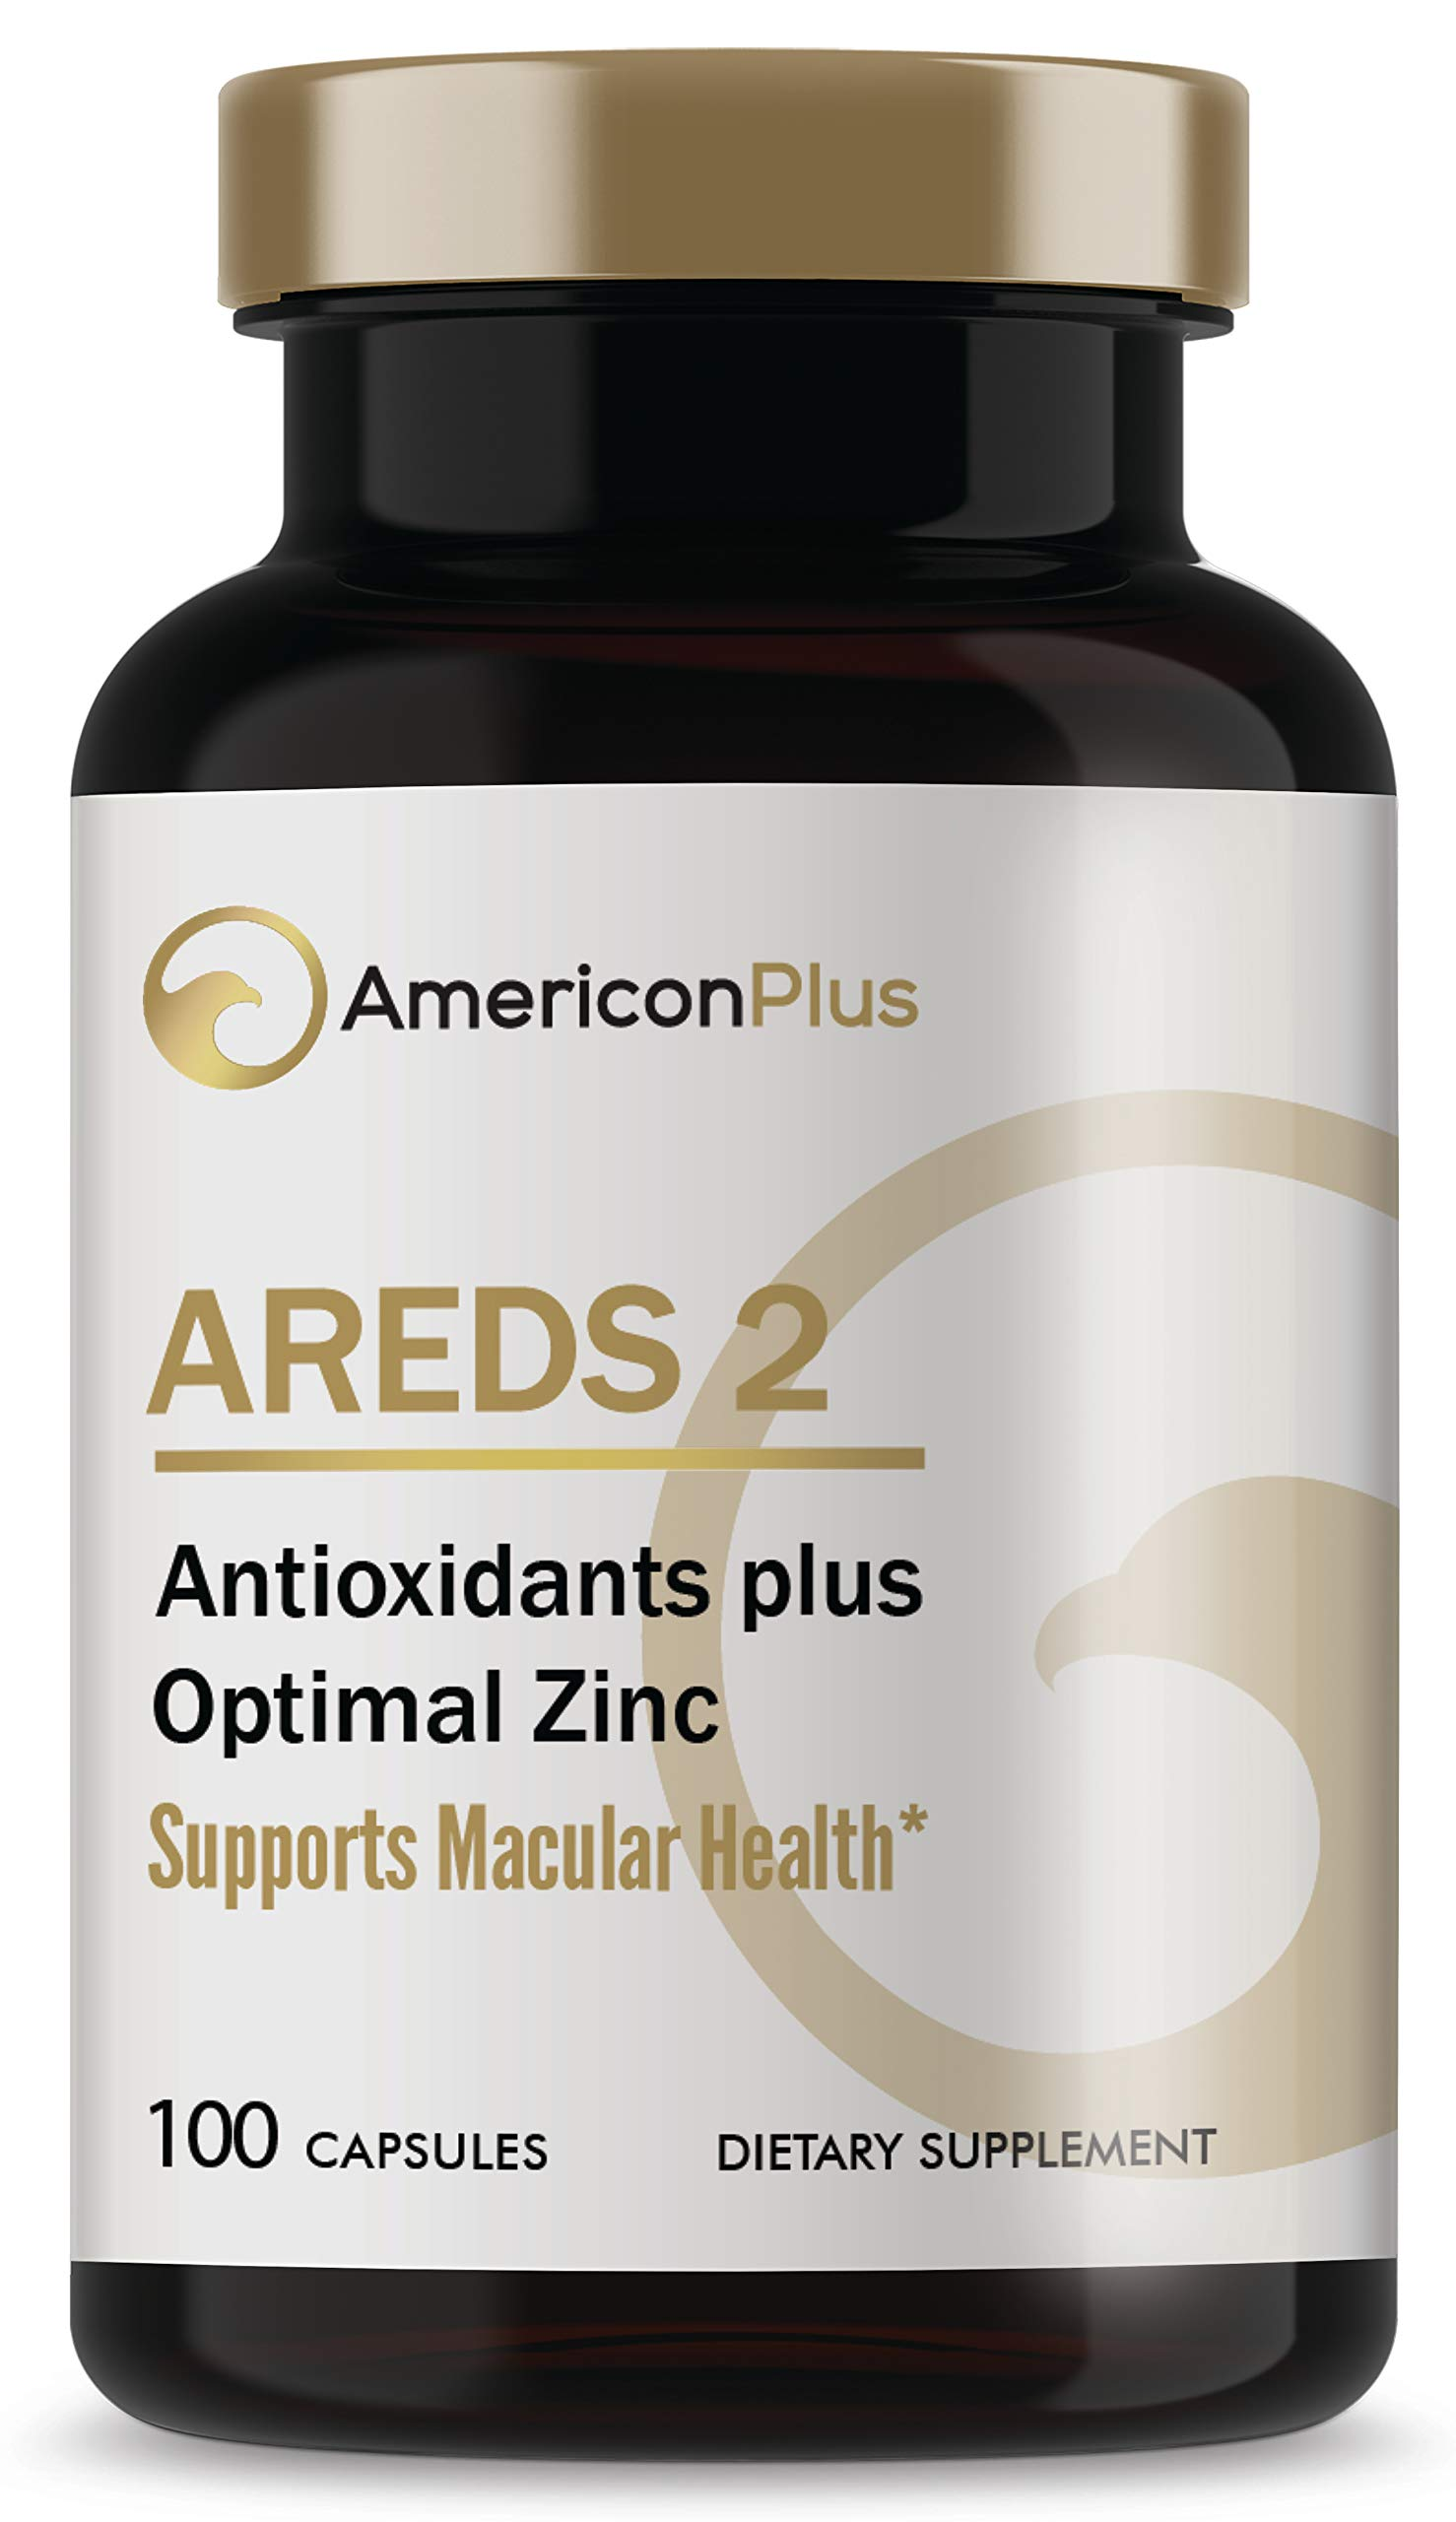 AREDS 2 Eye Vitamins for Macular Health; Based on AREDS and AREDS2 Eye Health Studies; Medical Doctor Research Certified; 100 Capsules by AmericonPlus